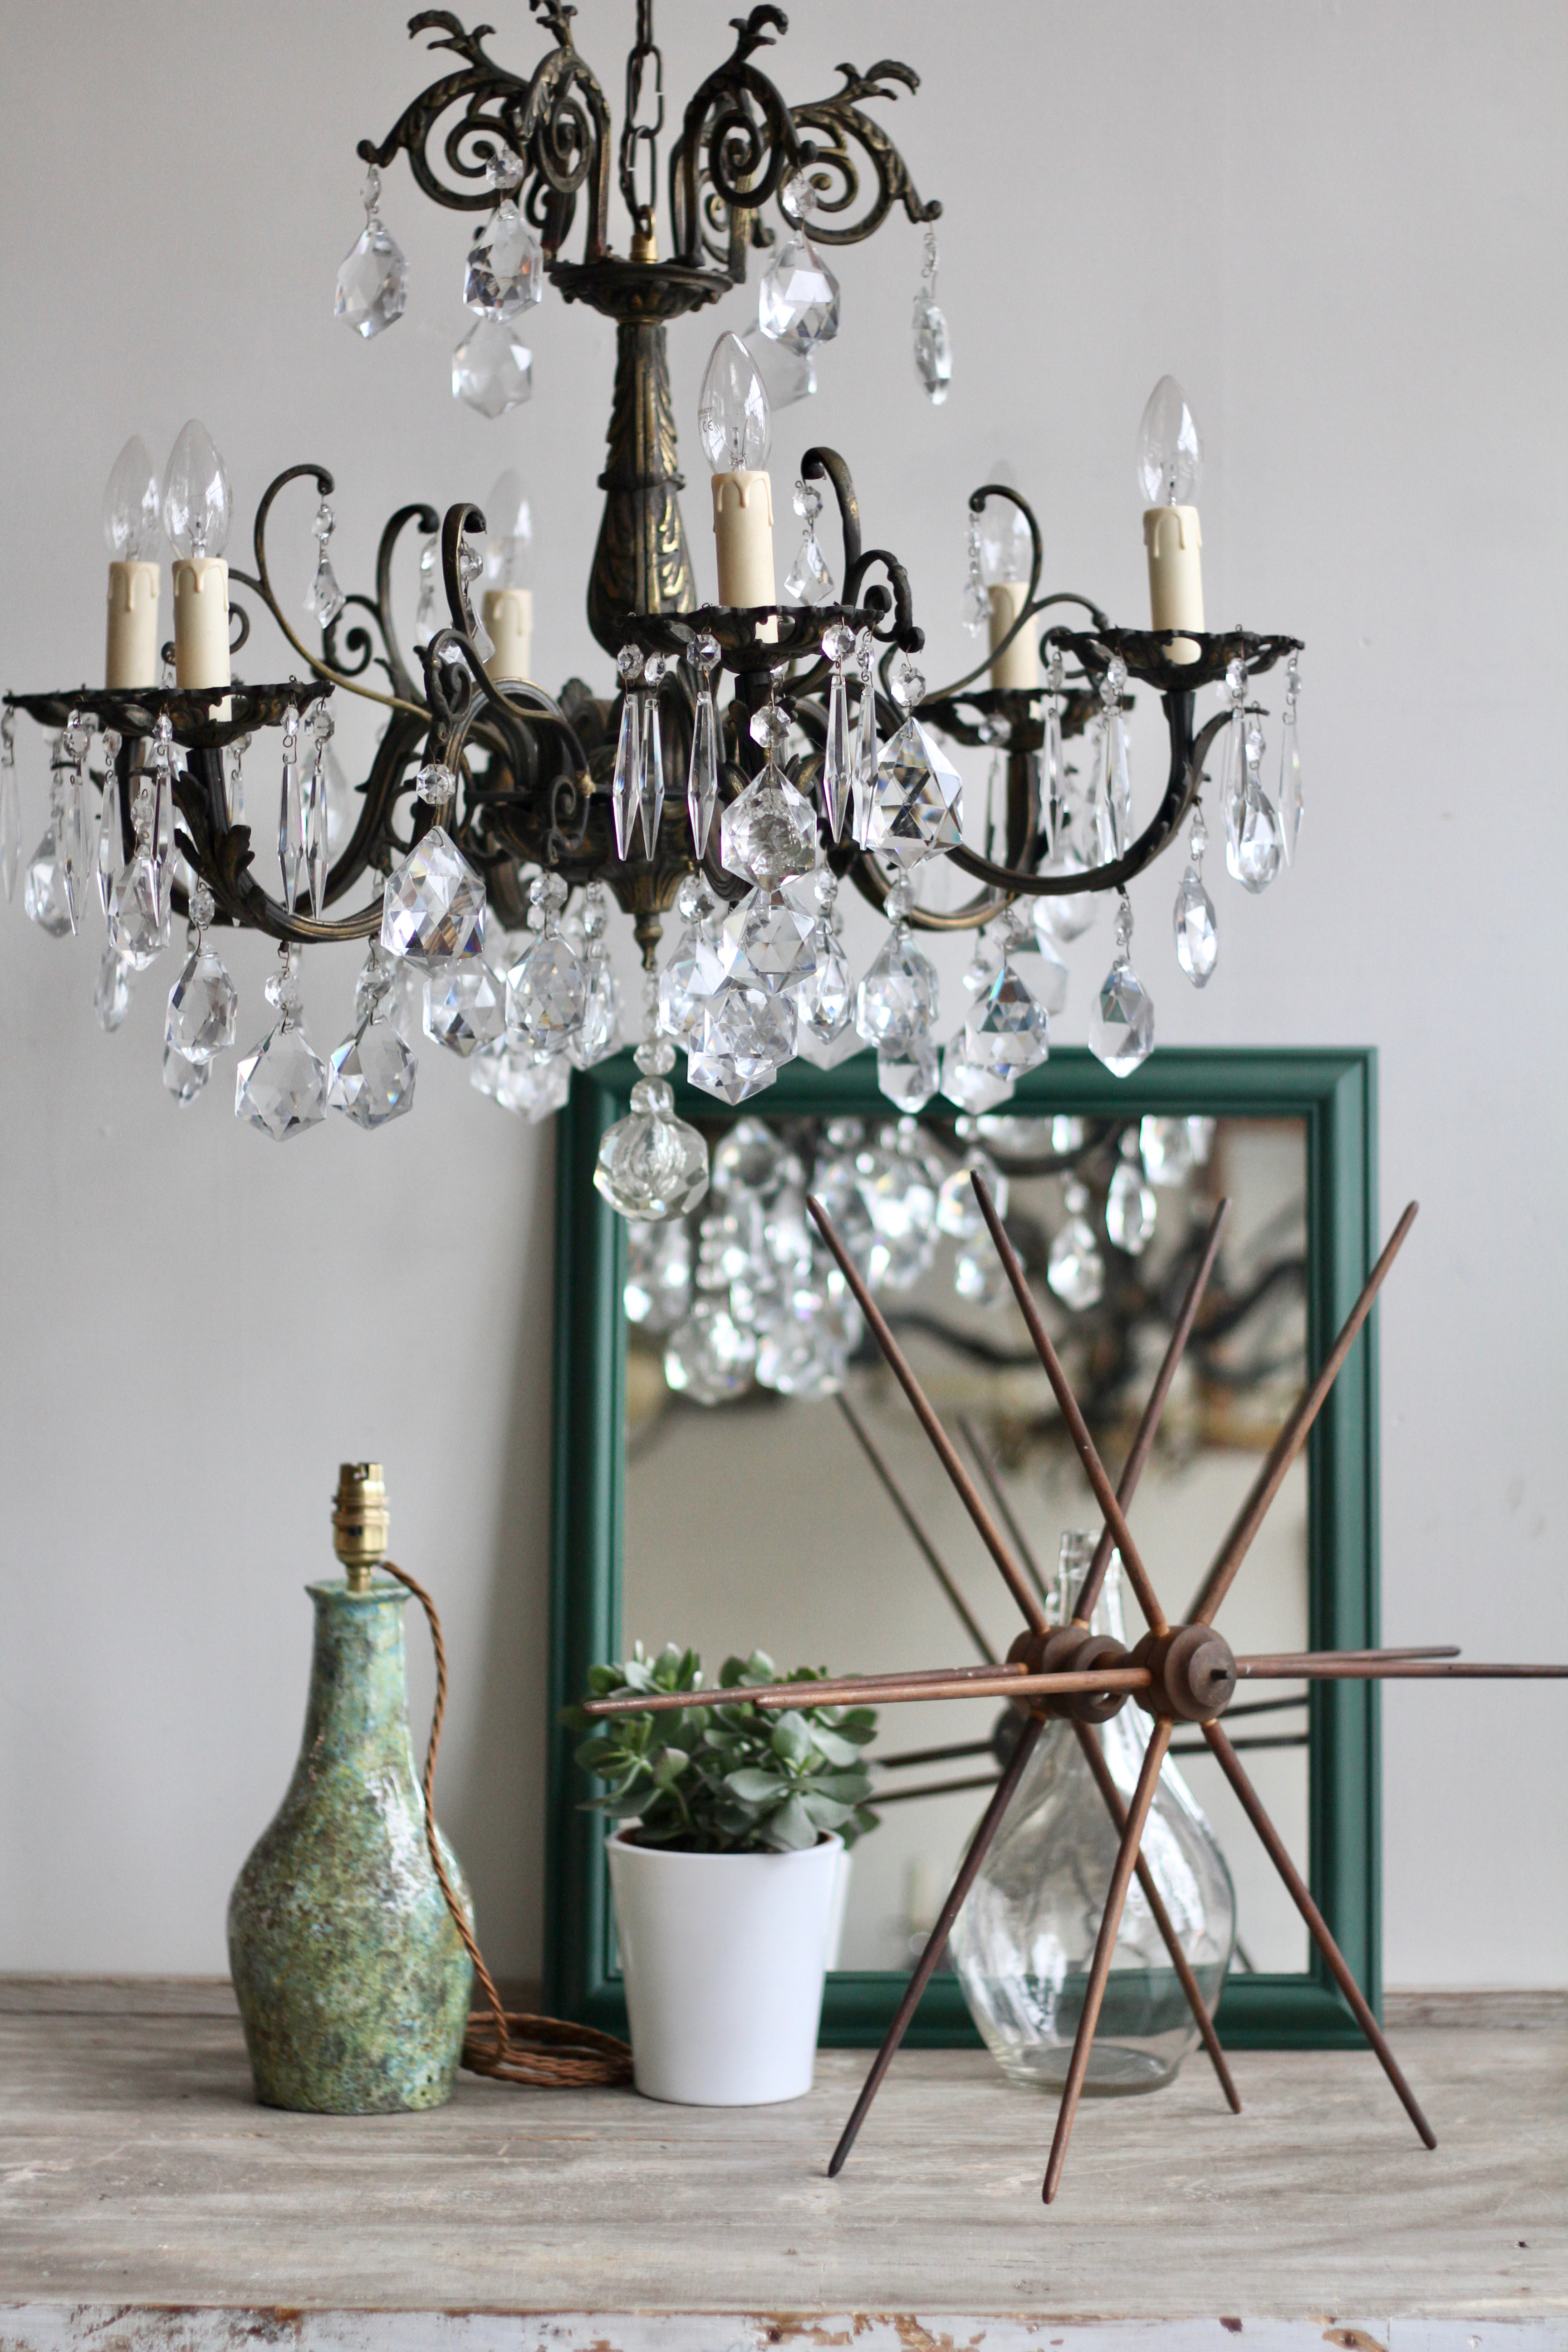 Shop Styling. Ornate Brass Chandelier with Annie Sloan painted Mirror, Textile Swift and Pottery Lamp.